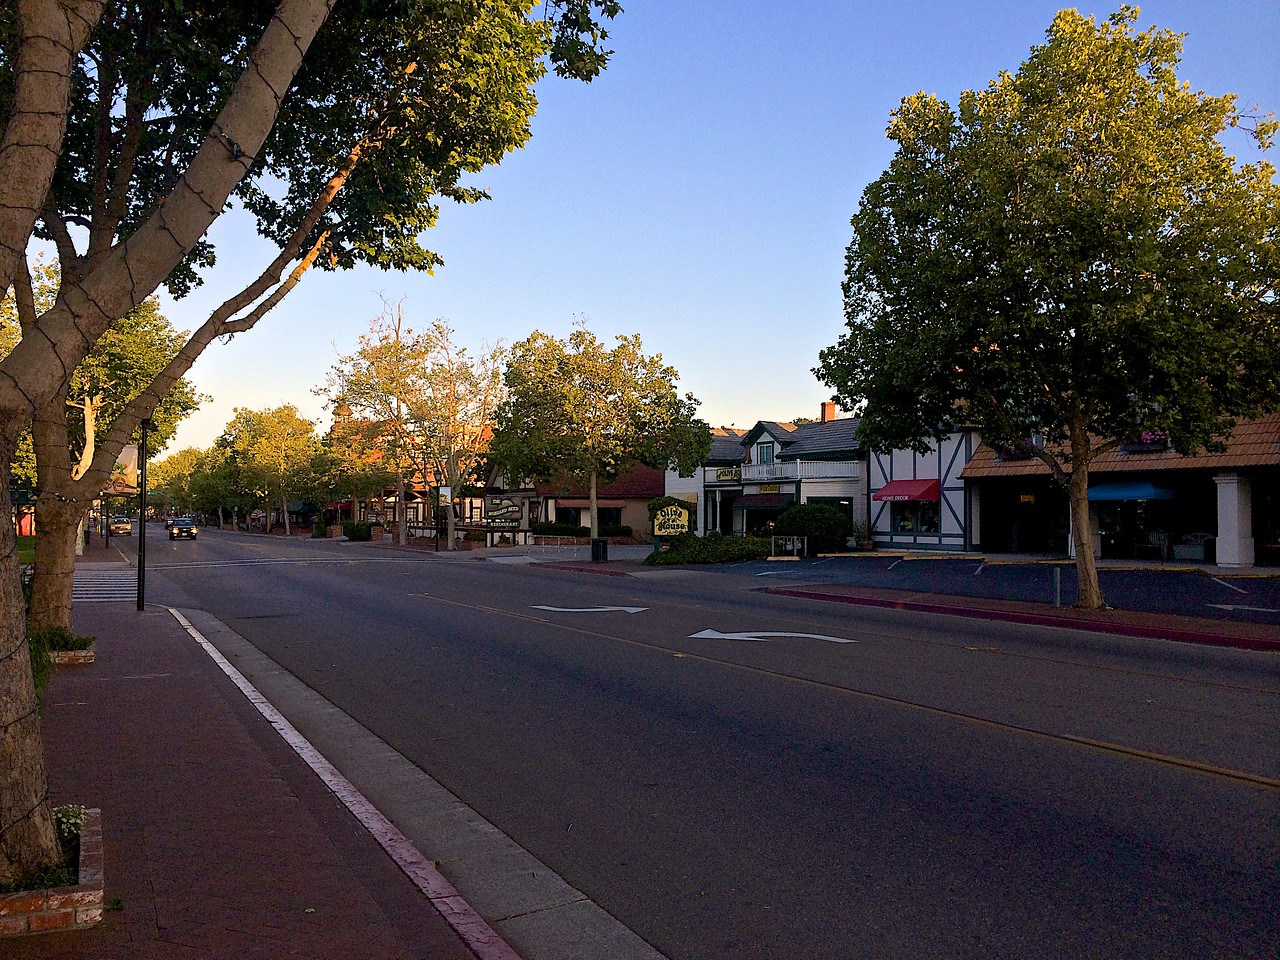 The main street of Solvang is California Highway 246.